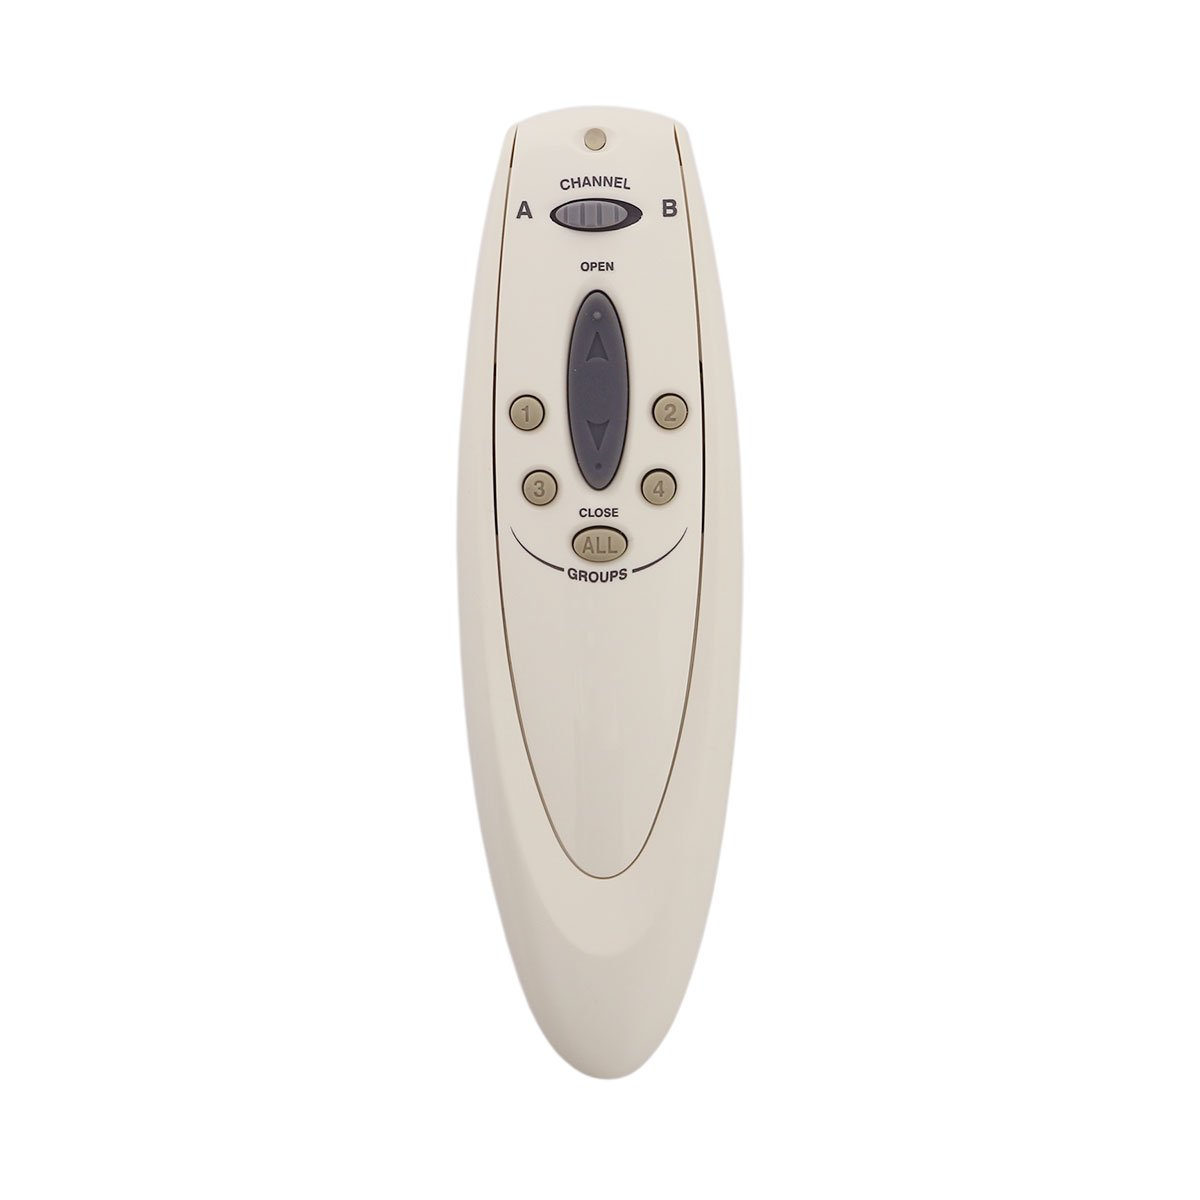 Hunter Douglas Platinum Remote Control for PowerRise, PowerGlide, and PowerTilt Systems (1001000869/2984495100)